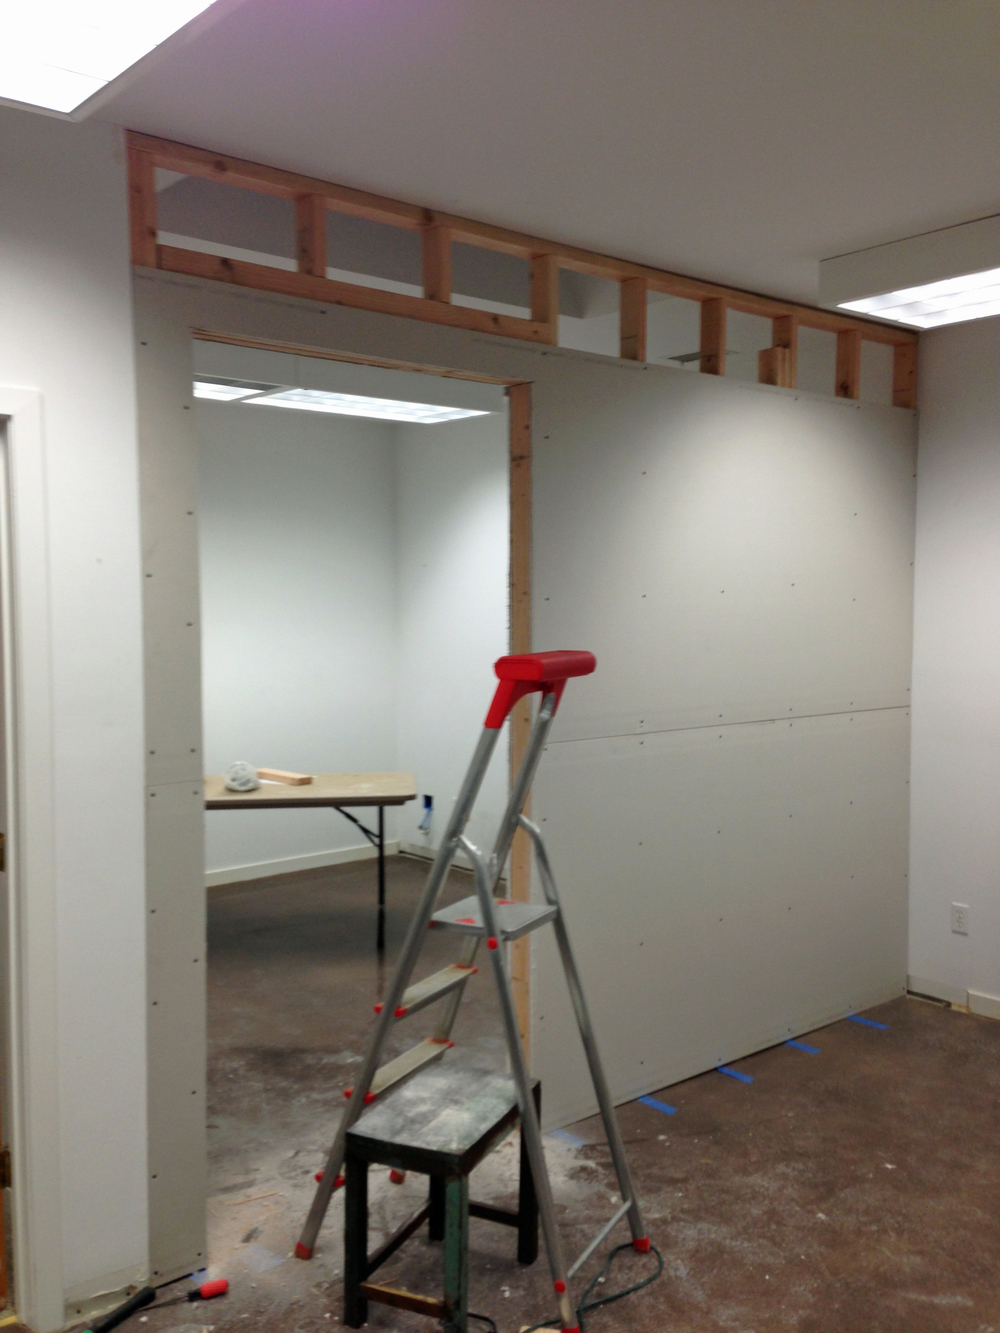 Sheetrock almost done.